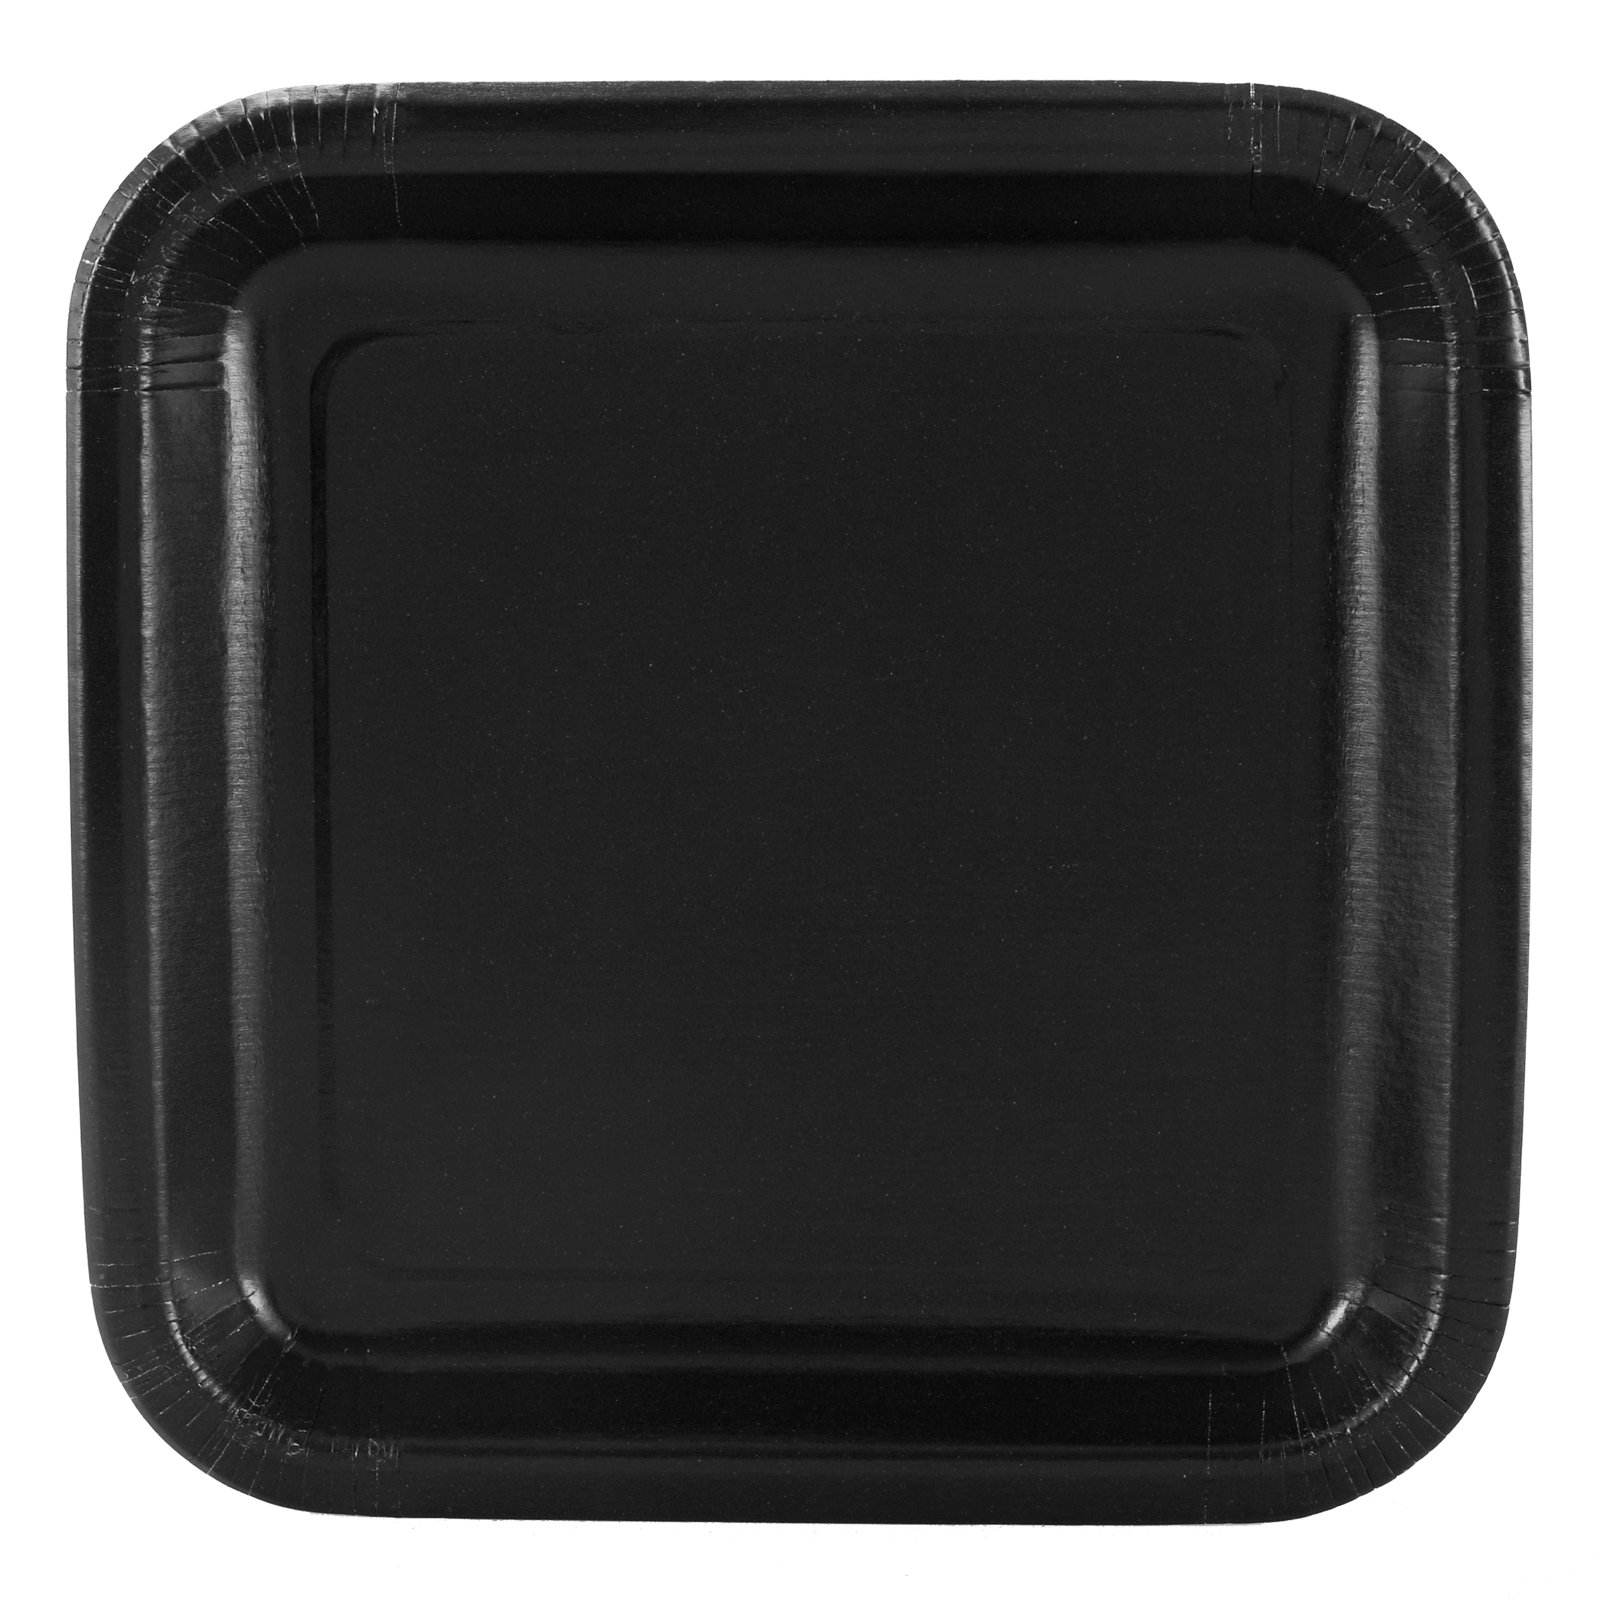 Black Square Dessert Plates (12 count)